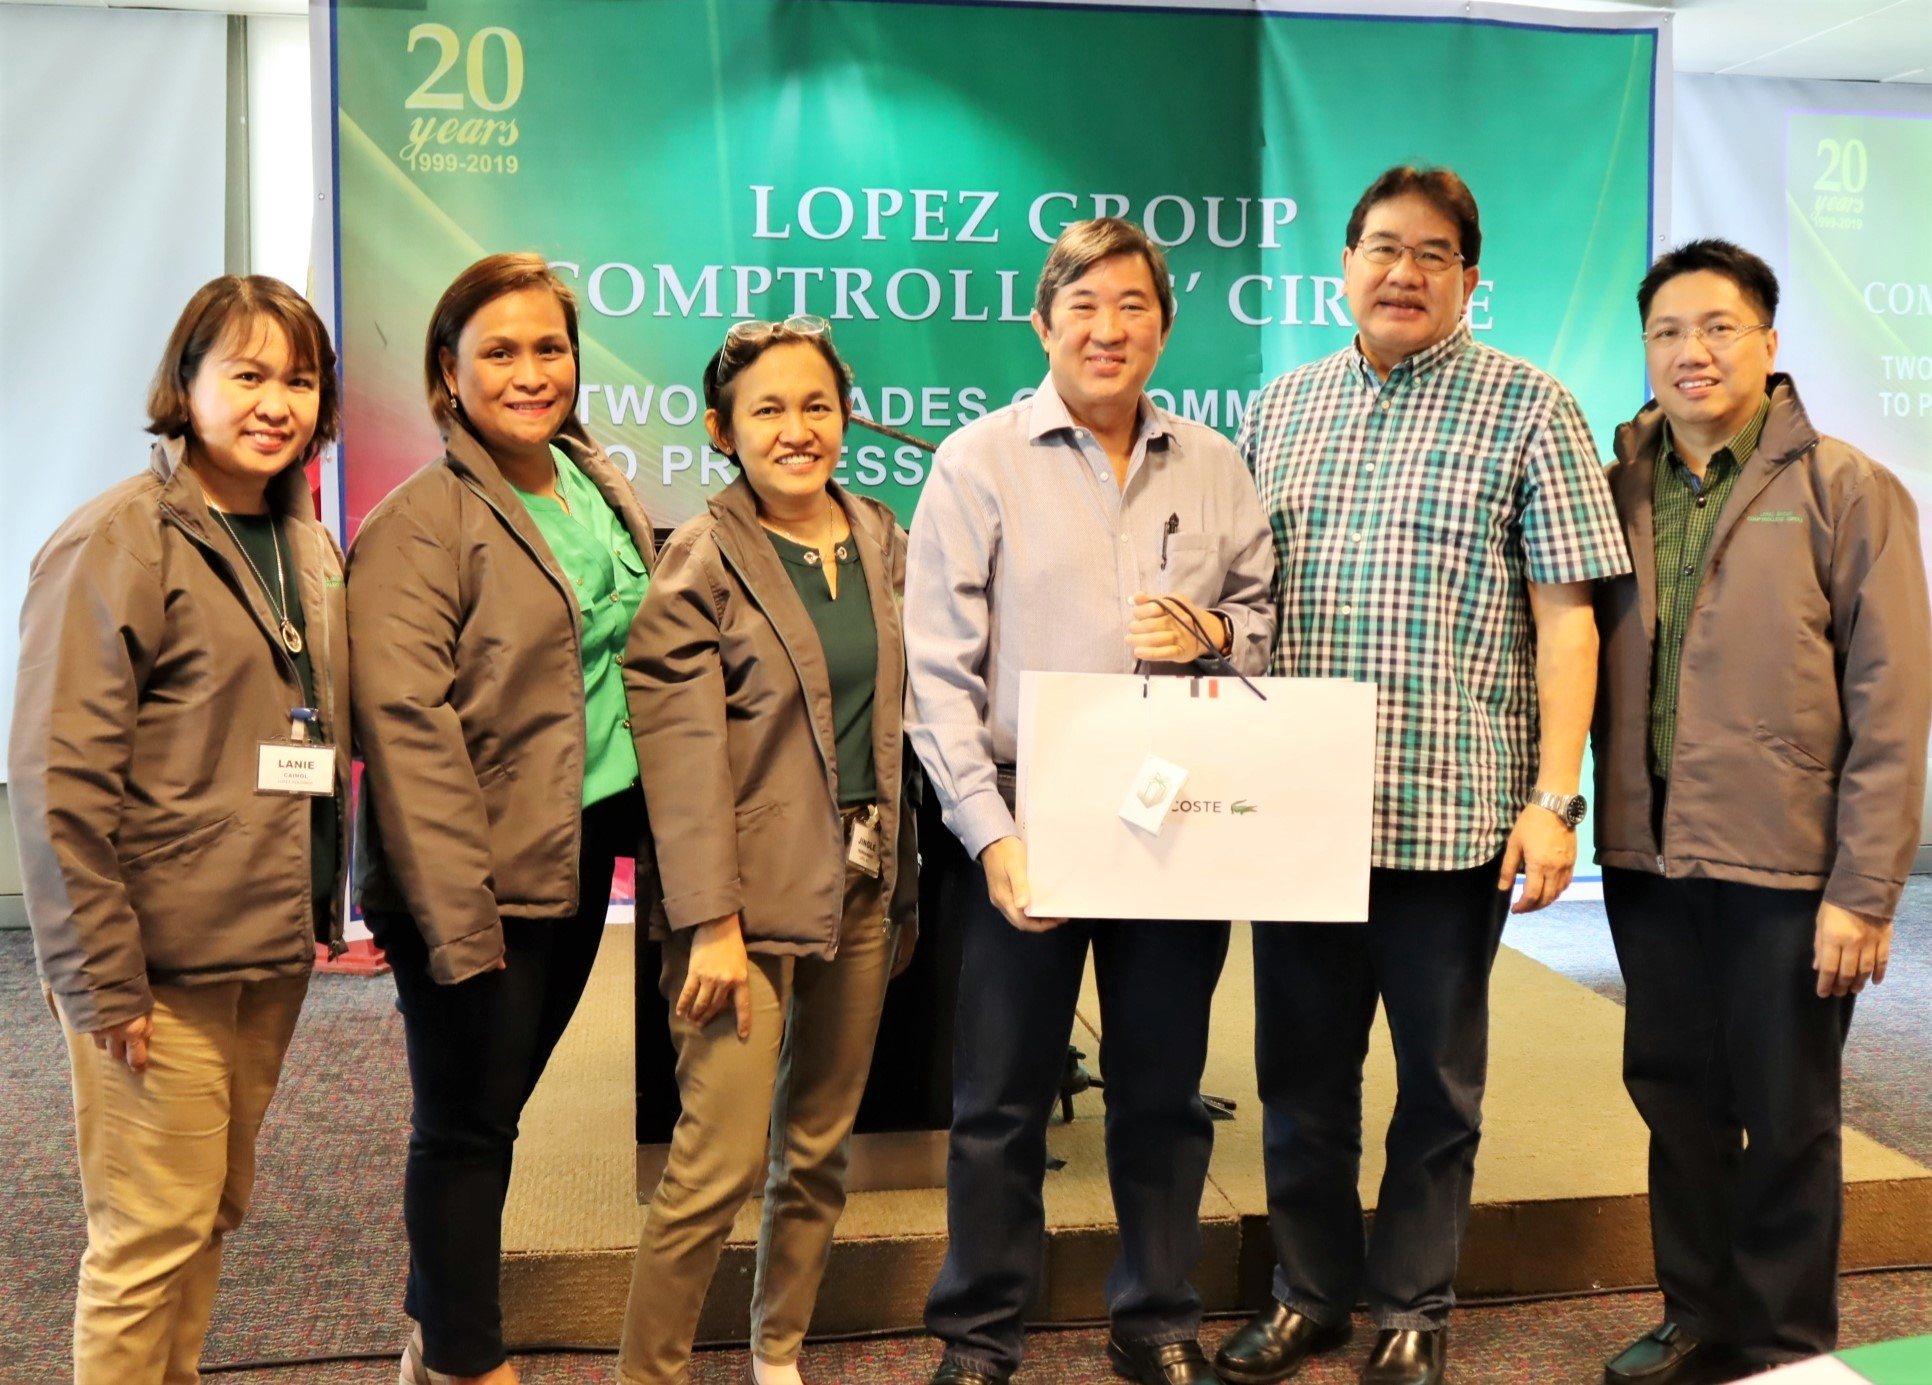 The Comptrollers' Circle core team with FPRC president Cary Lopez and Lopez Holdings Corporation president, COO & CFO Salvador G. Tirona (4th and 5th from left)